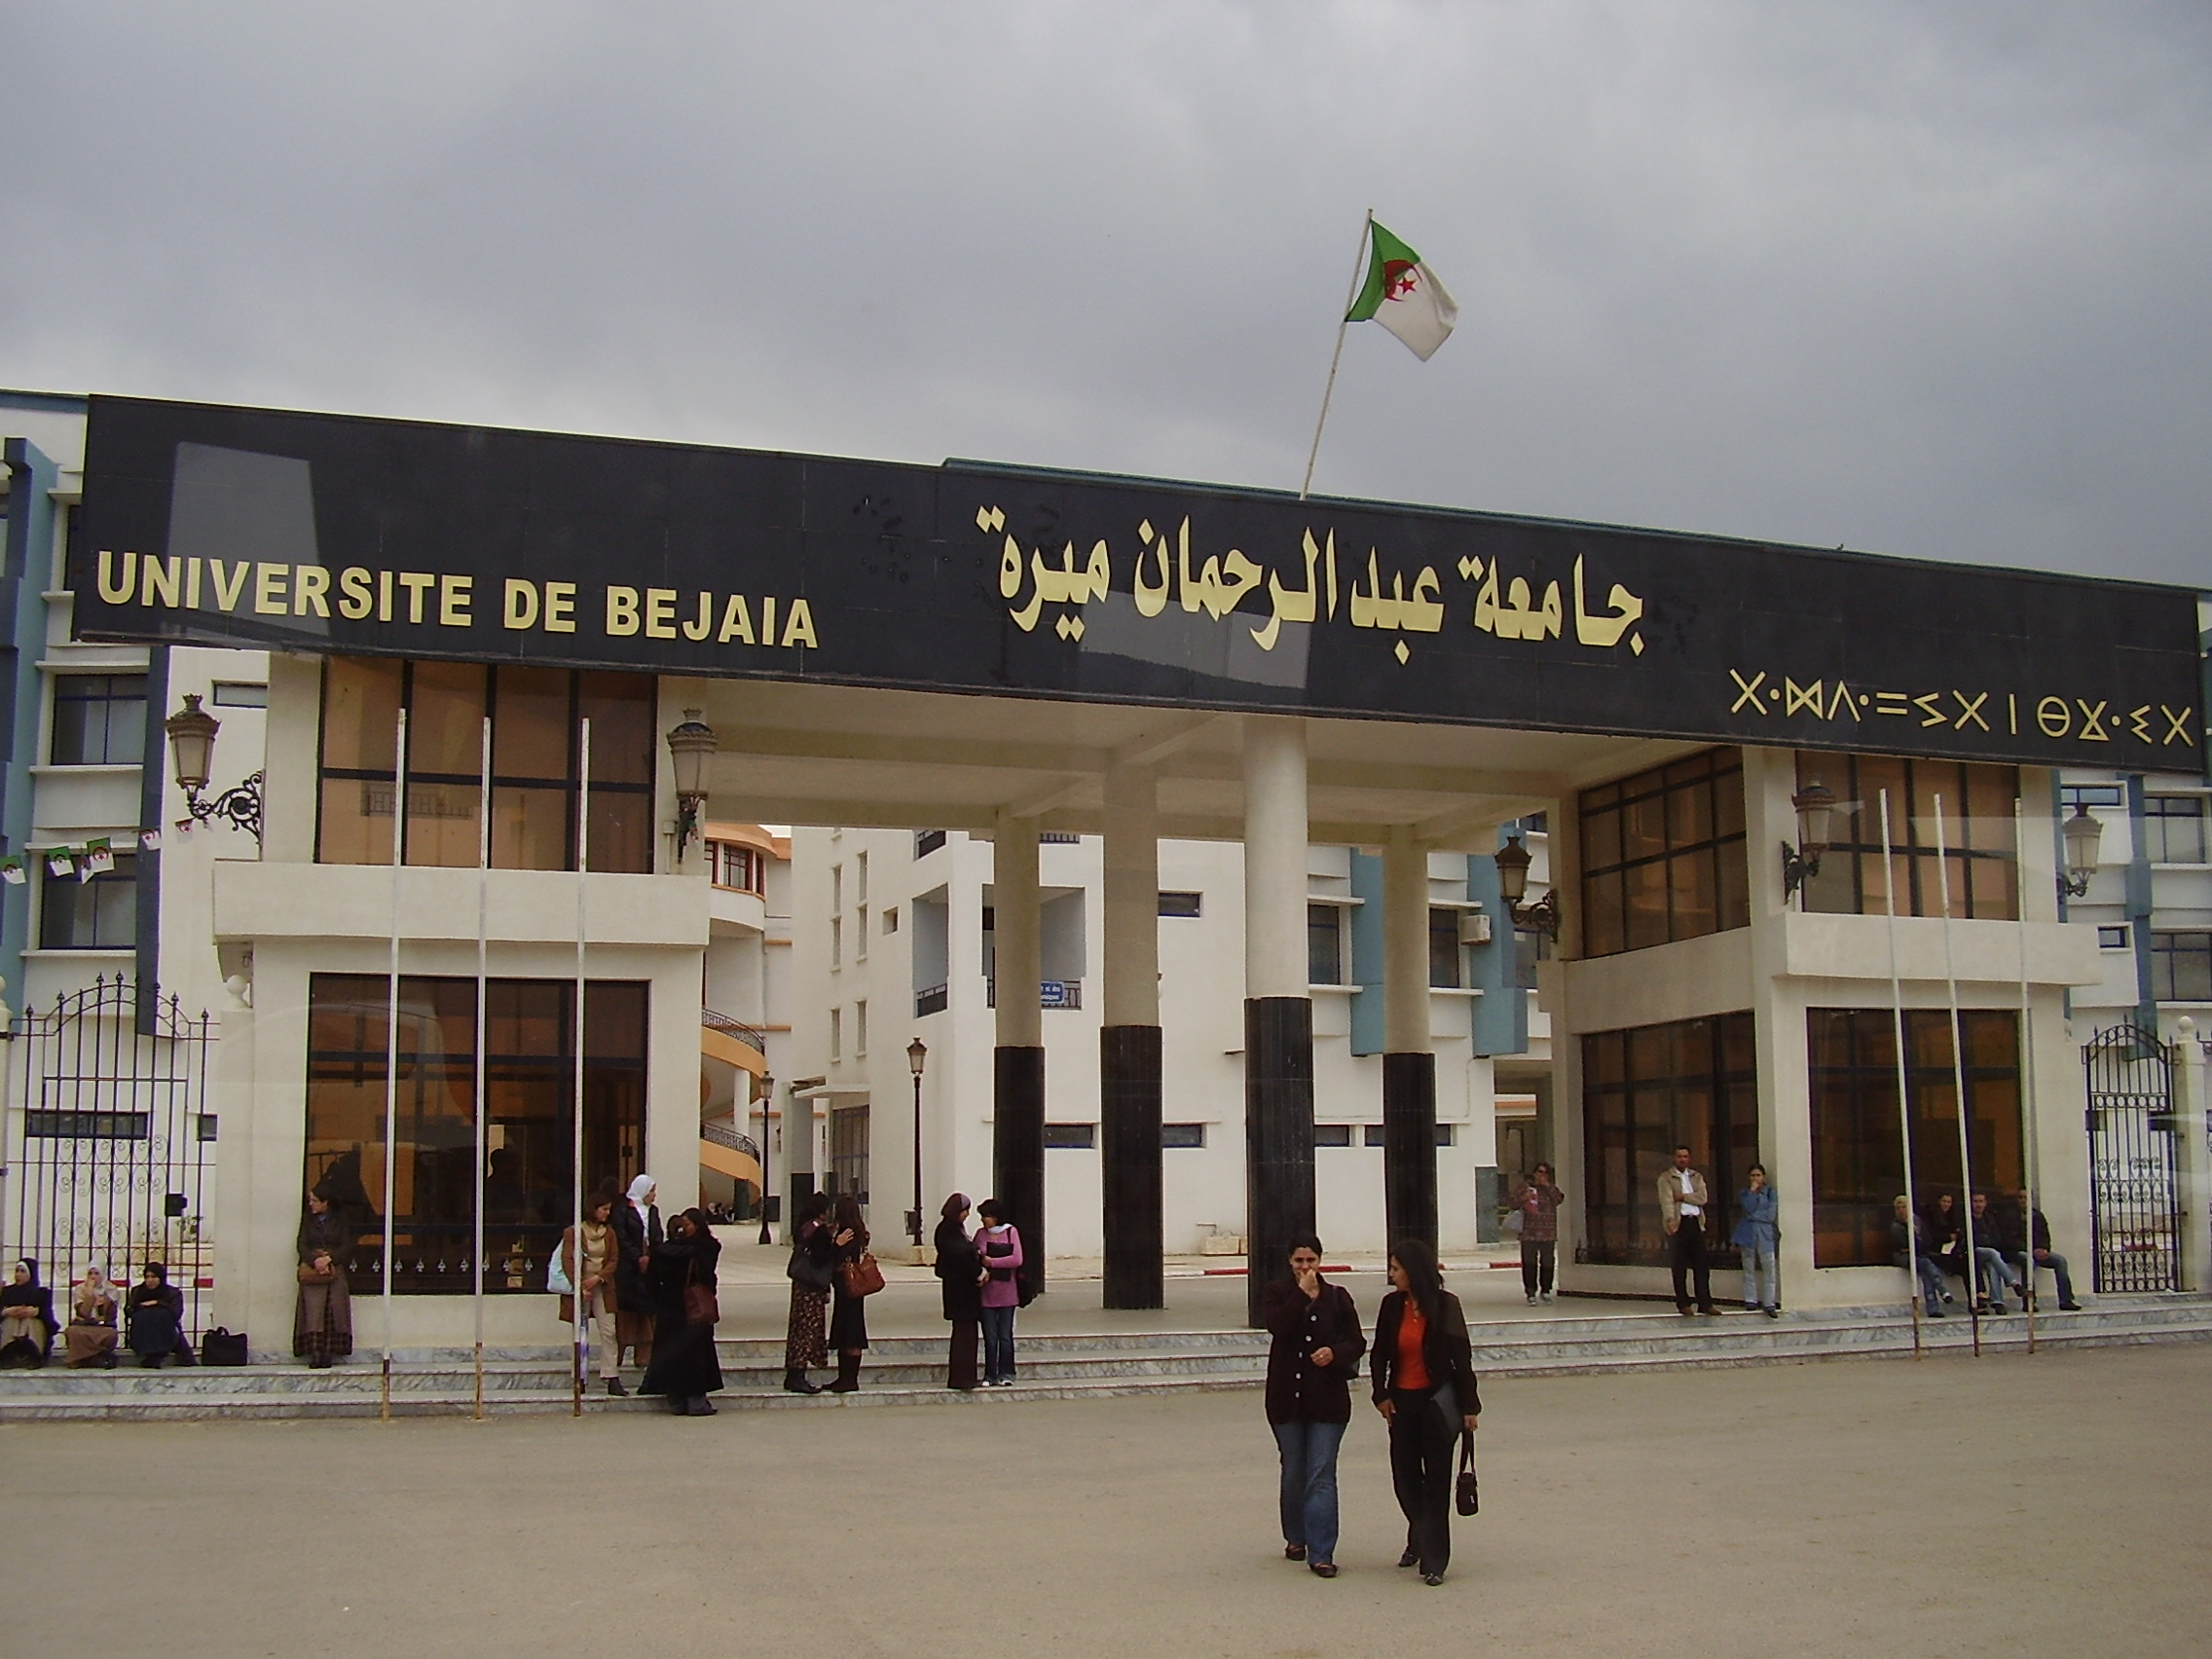 Algeria – Barbary Privateers - The main entrance of the University of Béjaïa